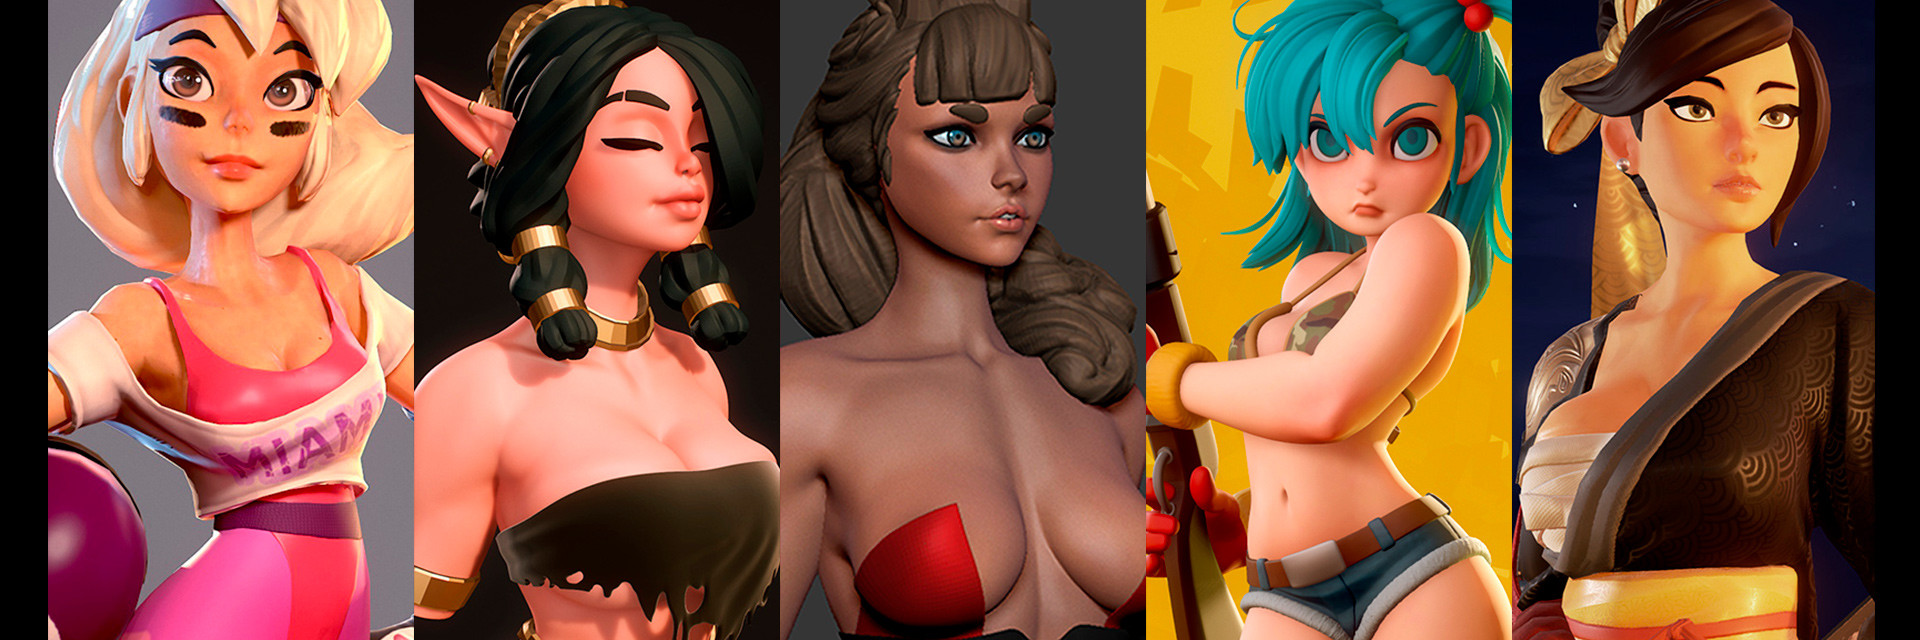 Mercurial Forge 3d Character Artist